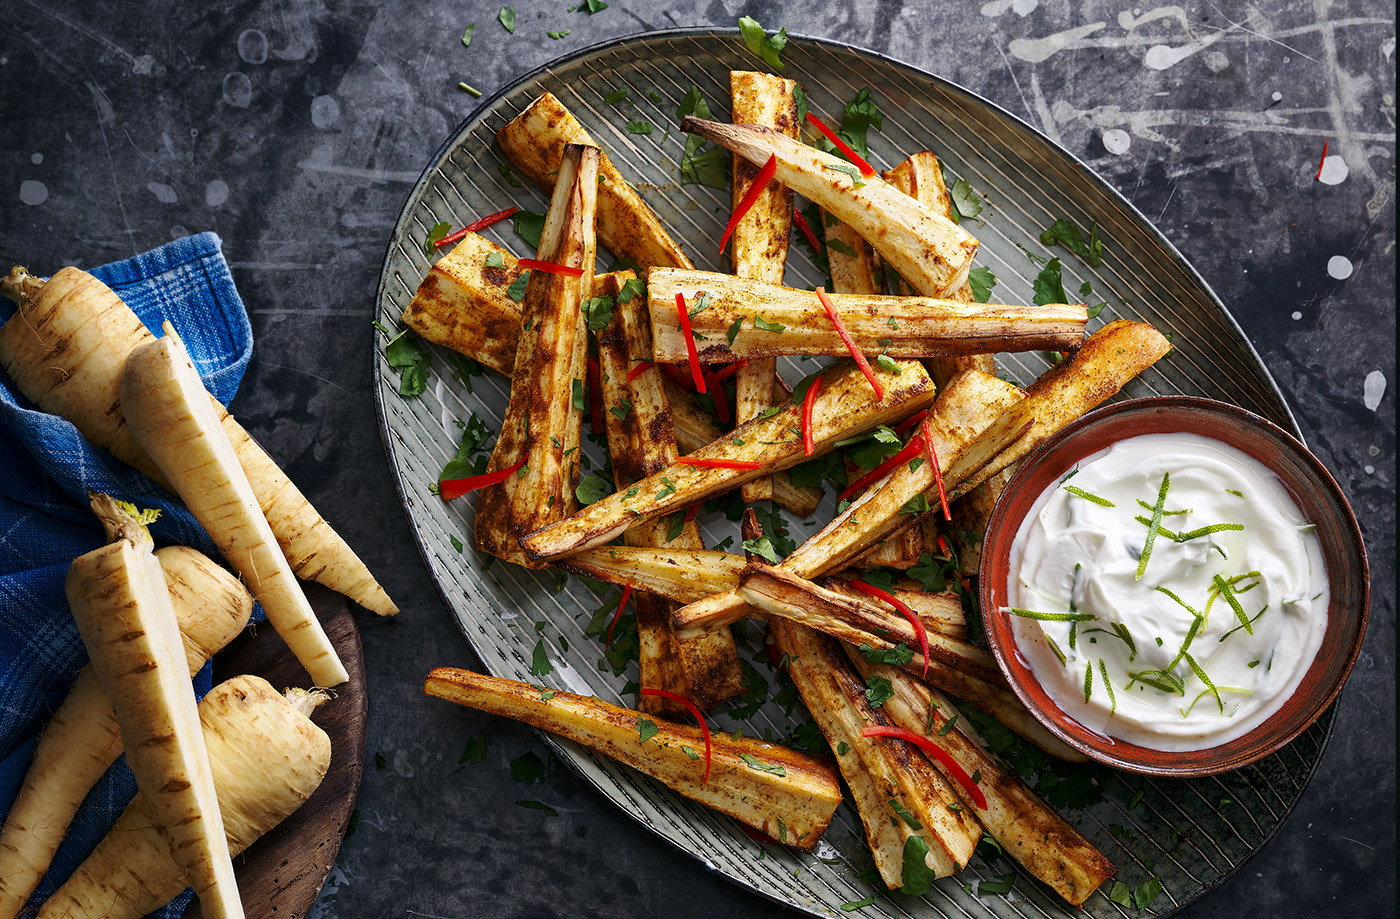 Spiced roast parsnips with zesty yogurt recipe